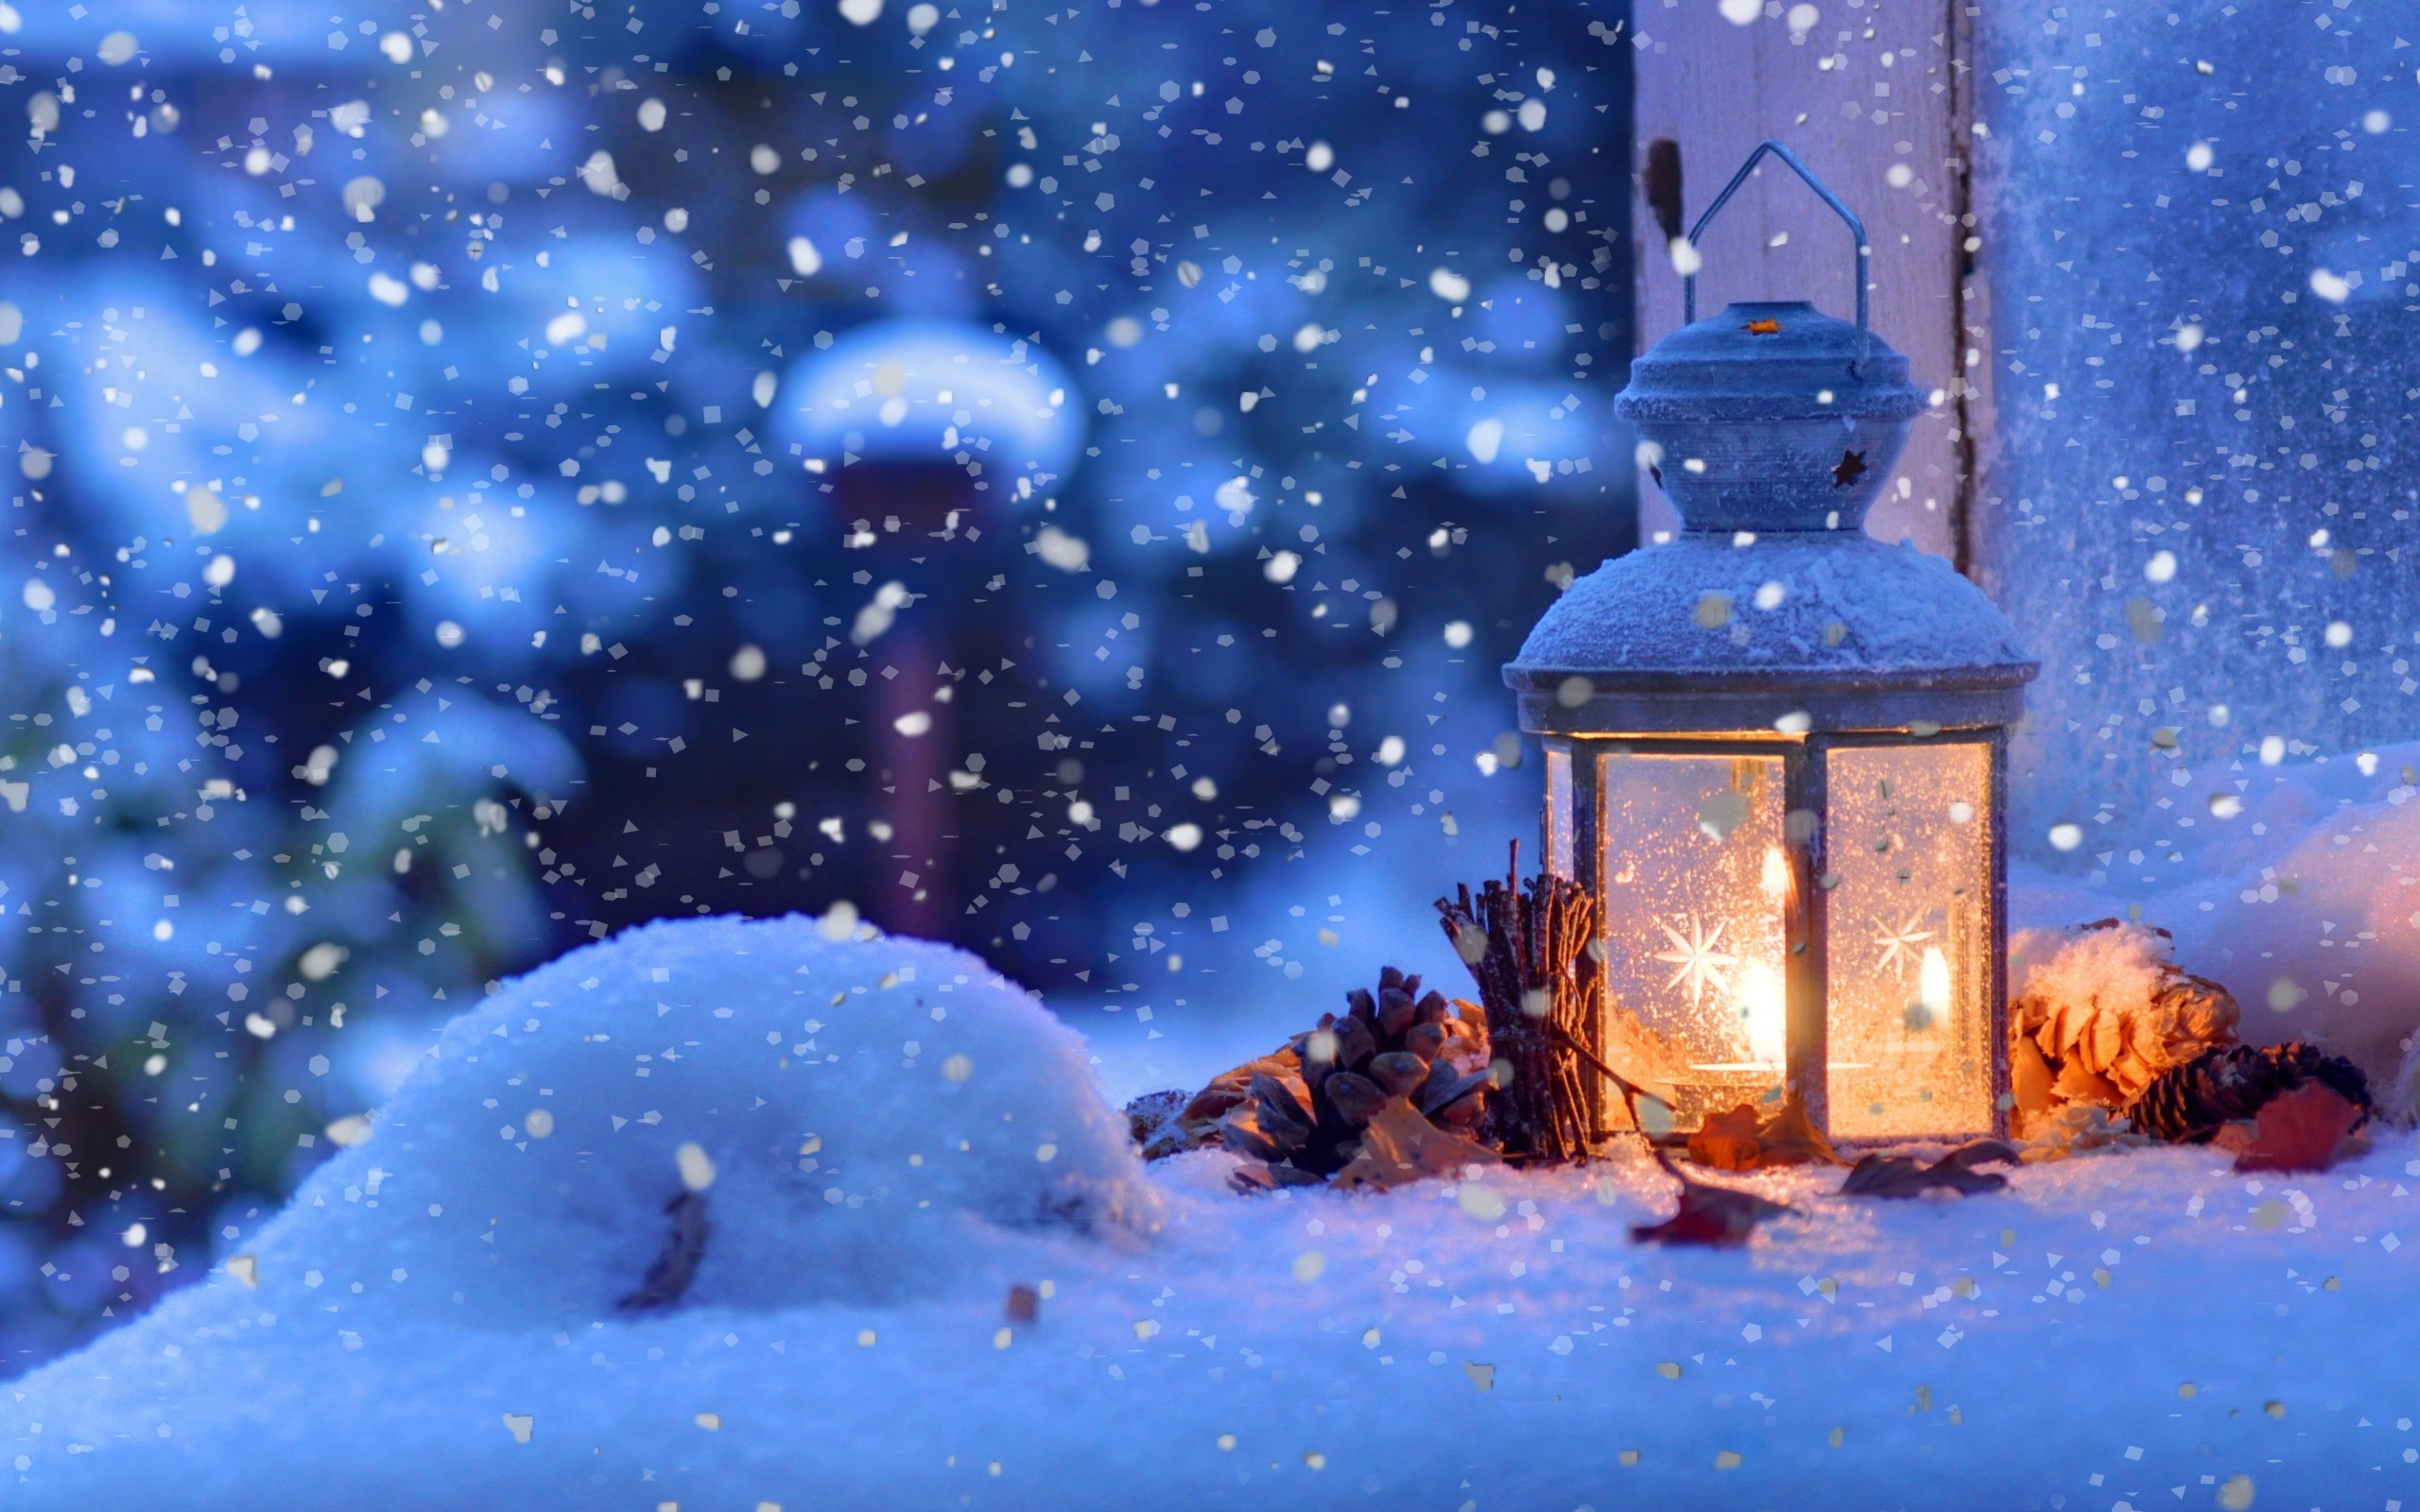 45 ultra hd christmas wallpapers on wallpapersafari 45 ultra hd christmas wallpapers on